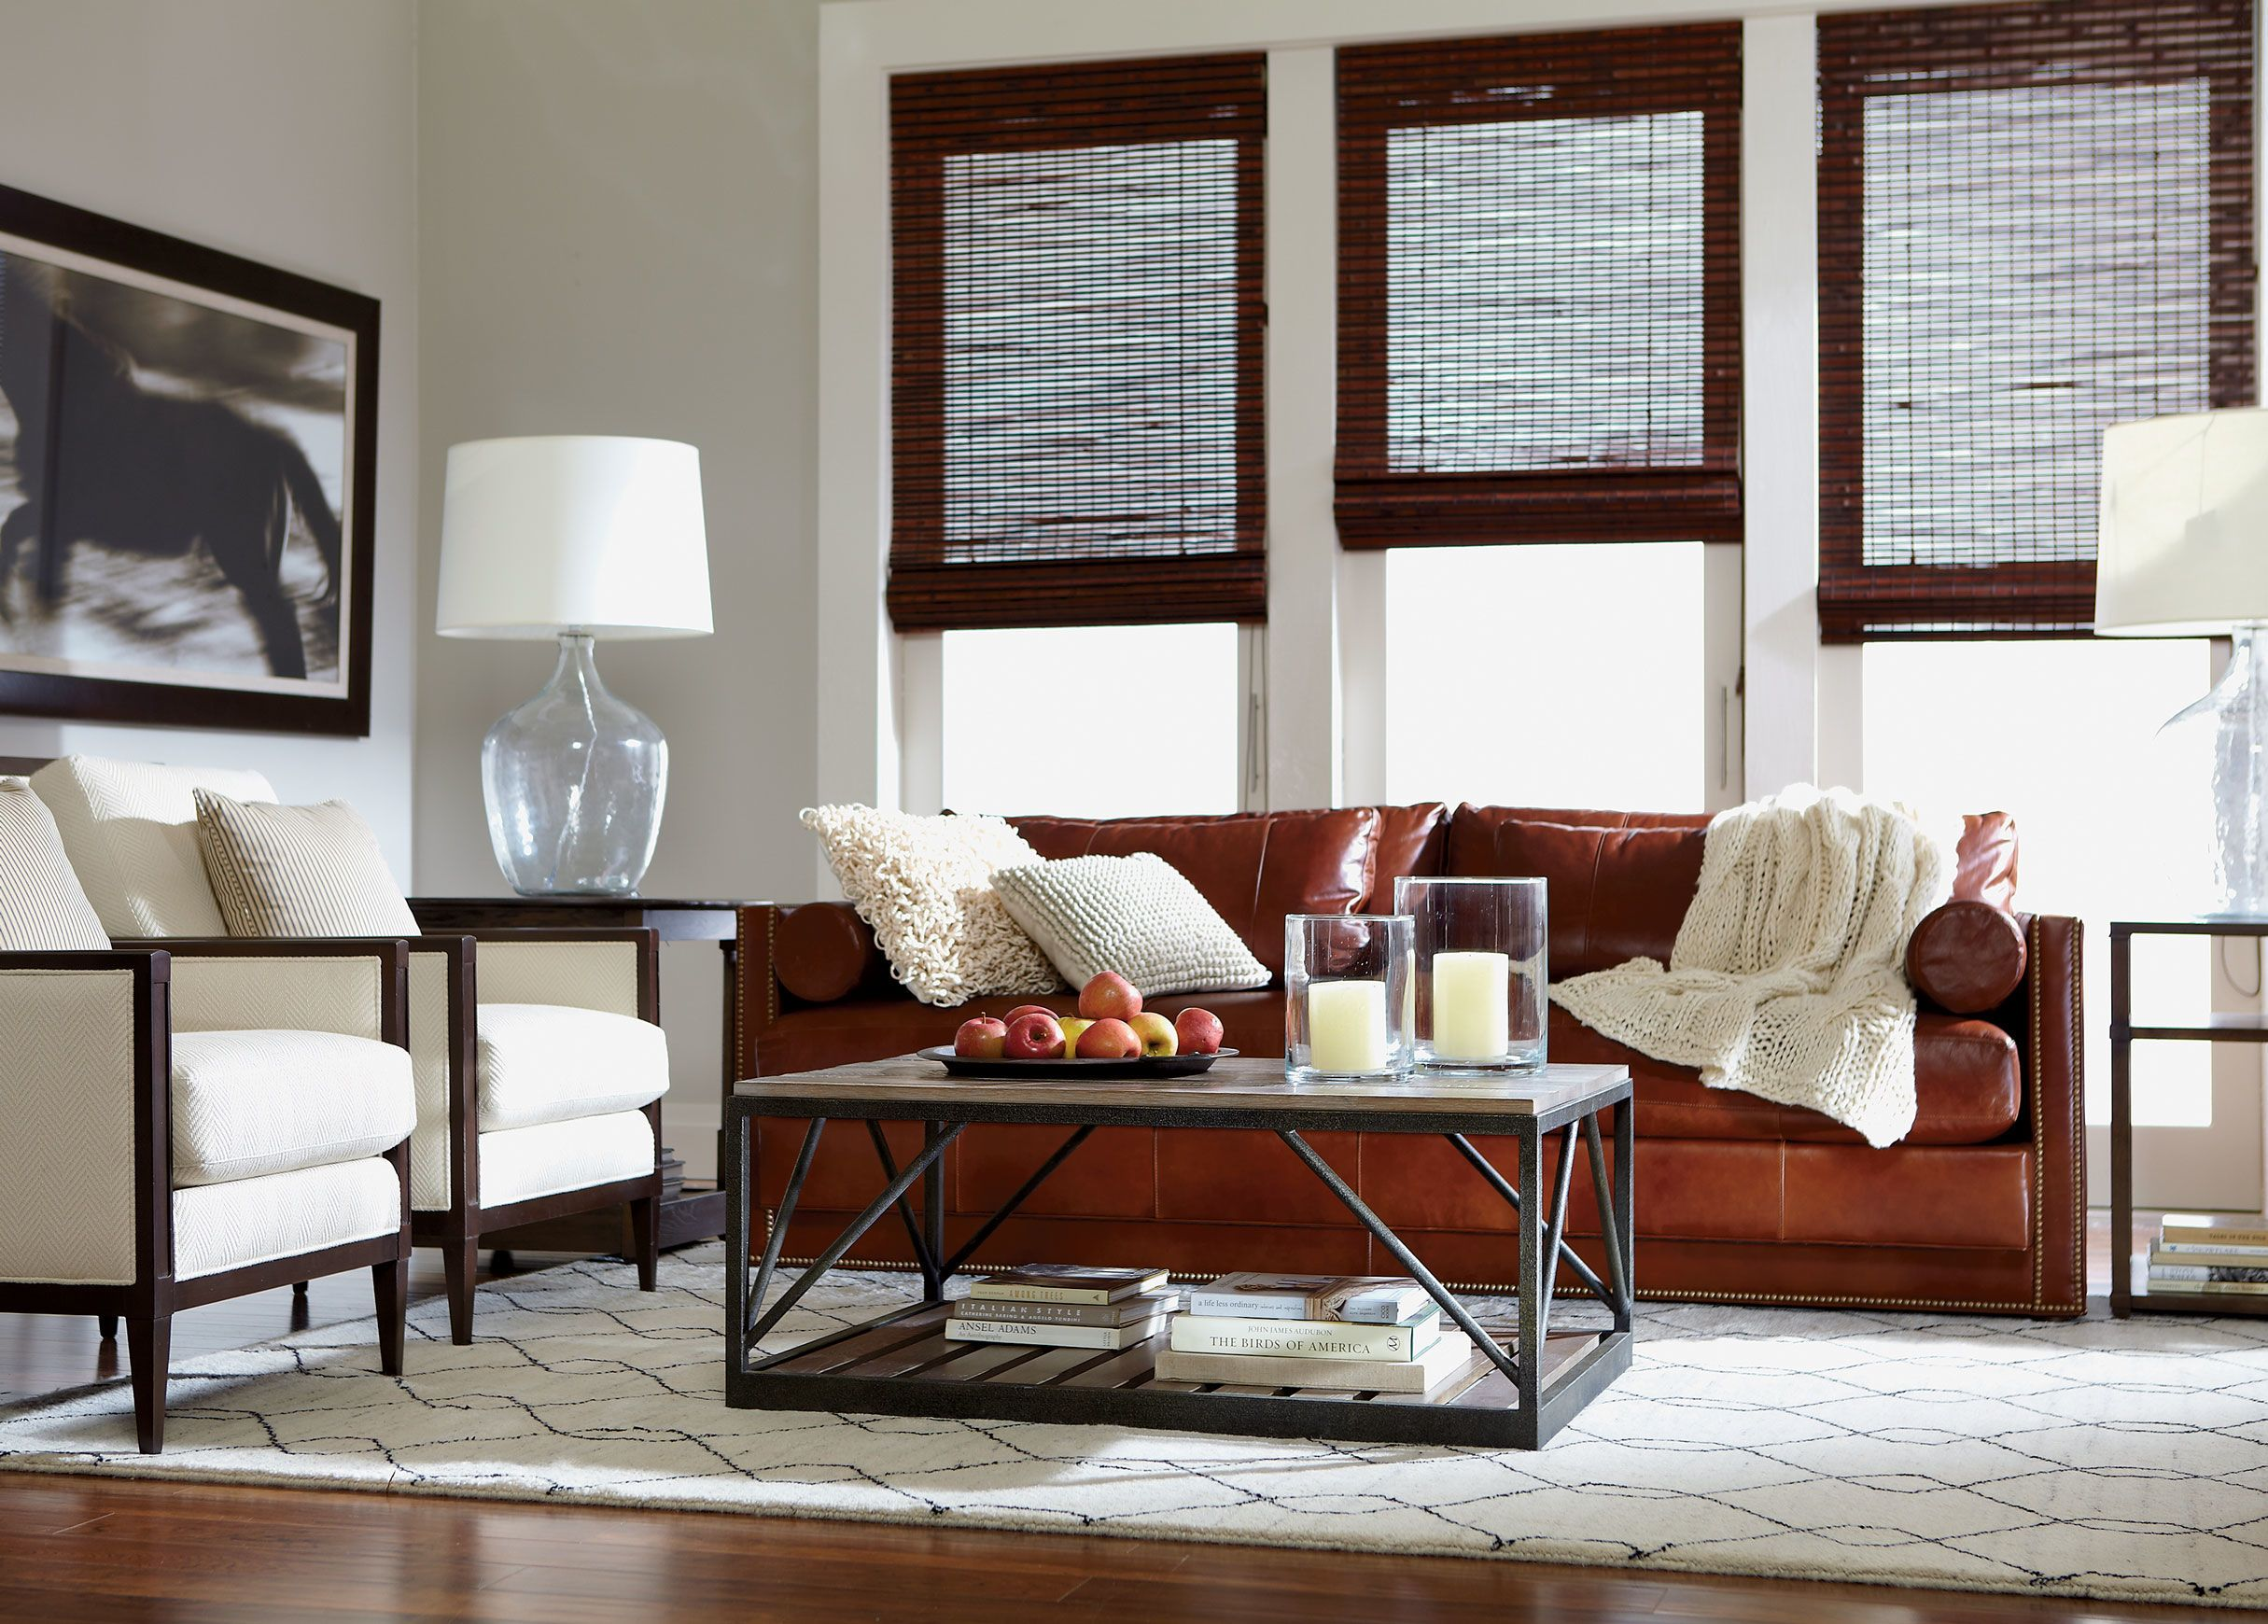 Perfect Scale For End Table In Living Room Nice Reflective Surface Ethan Allen Oversized